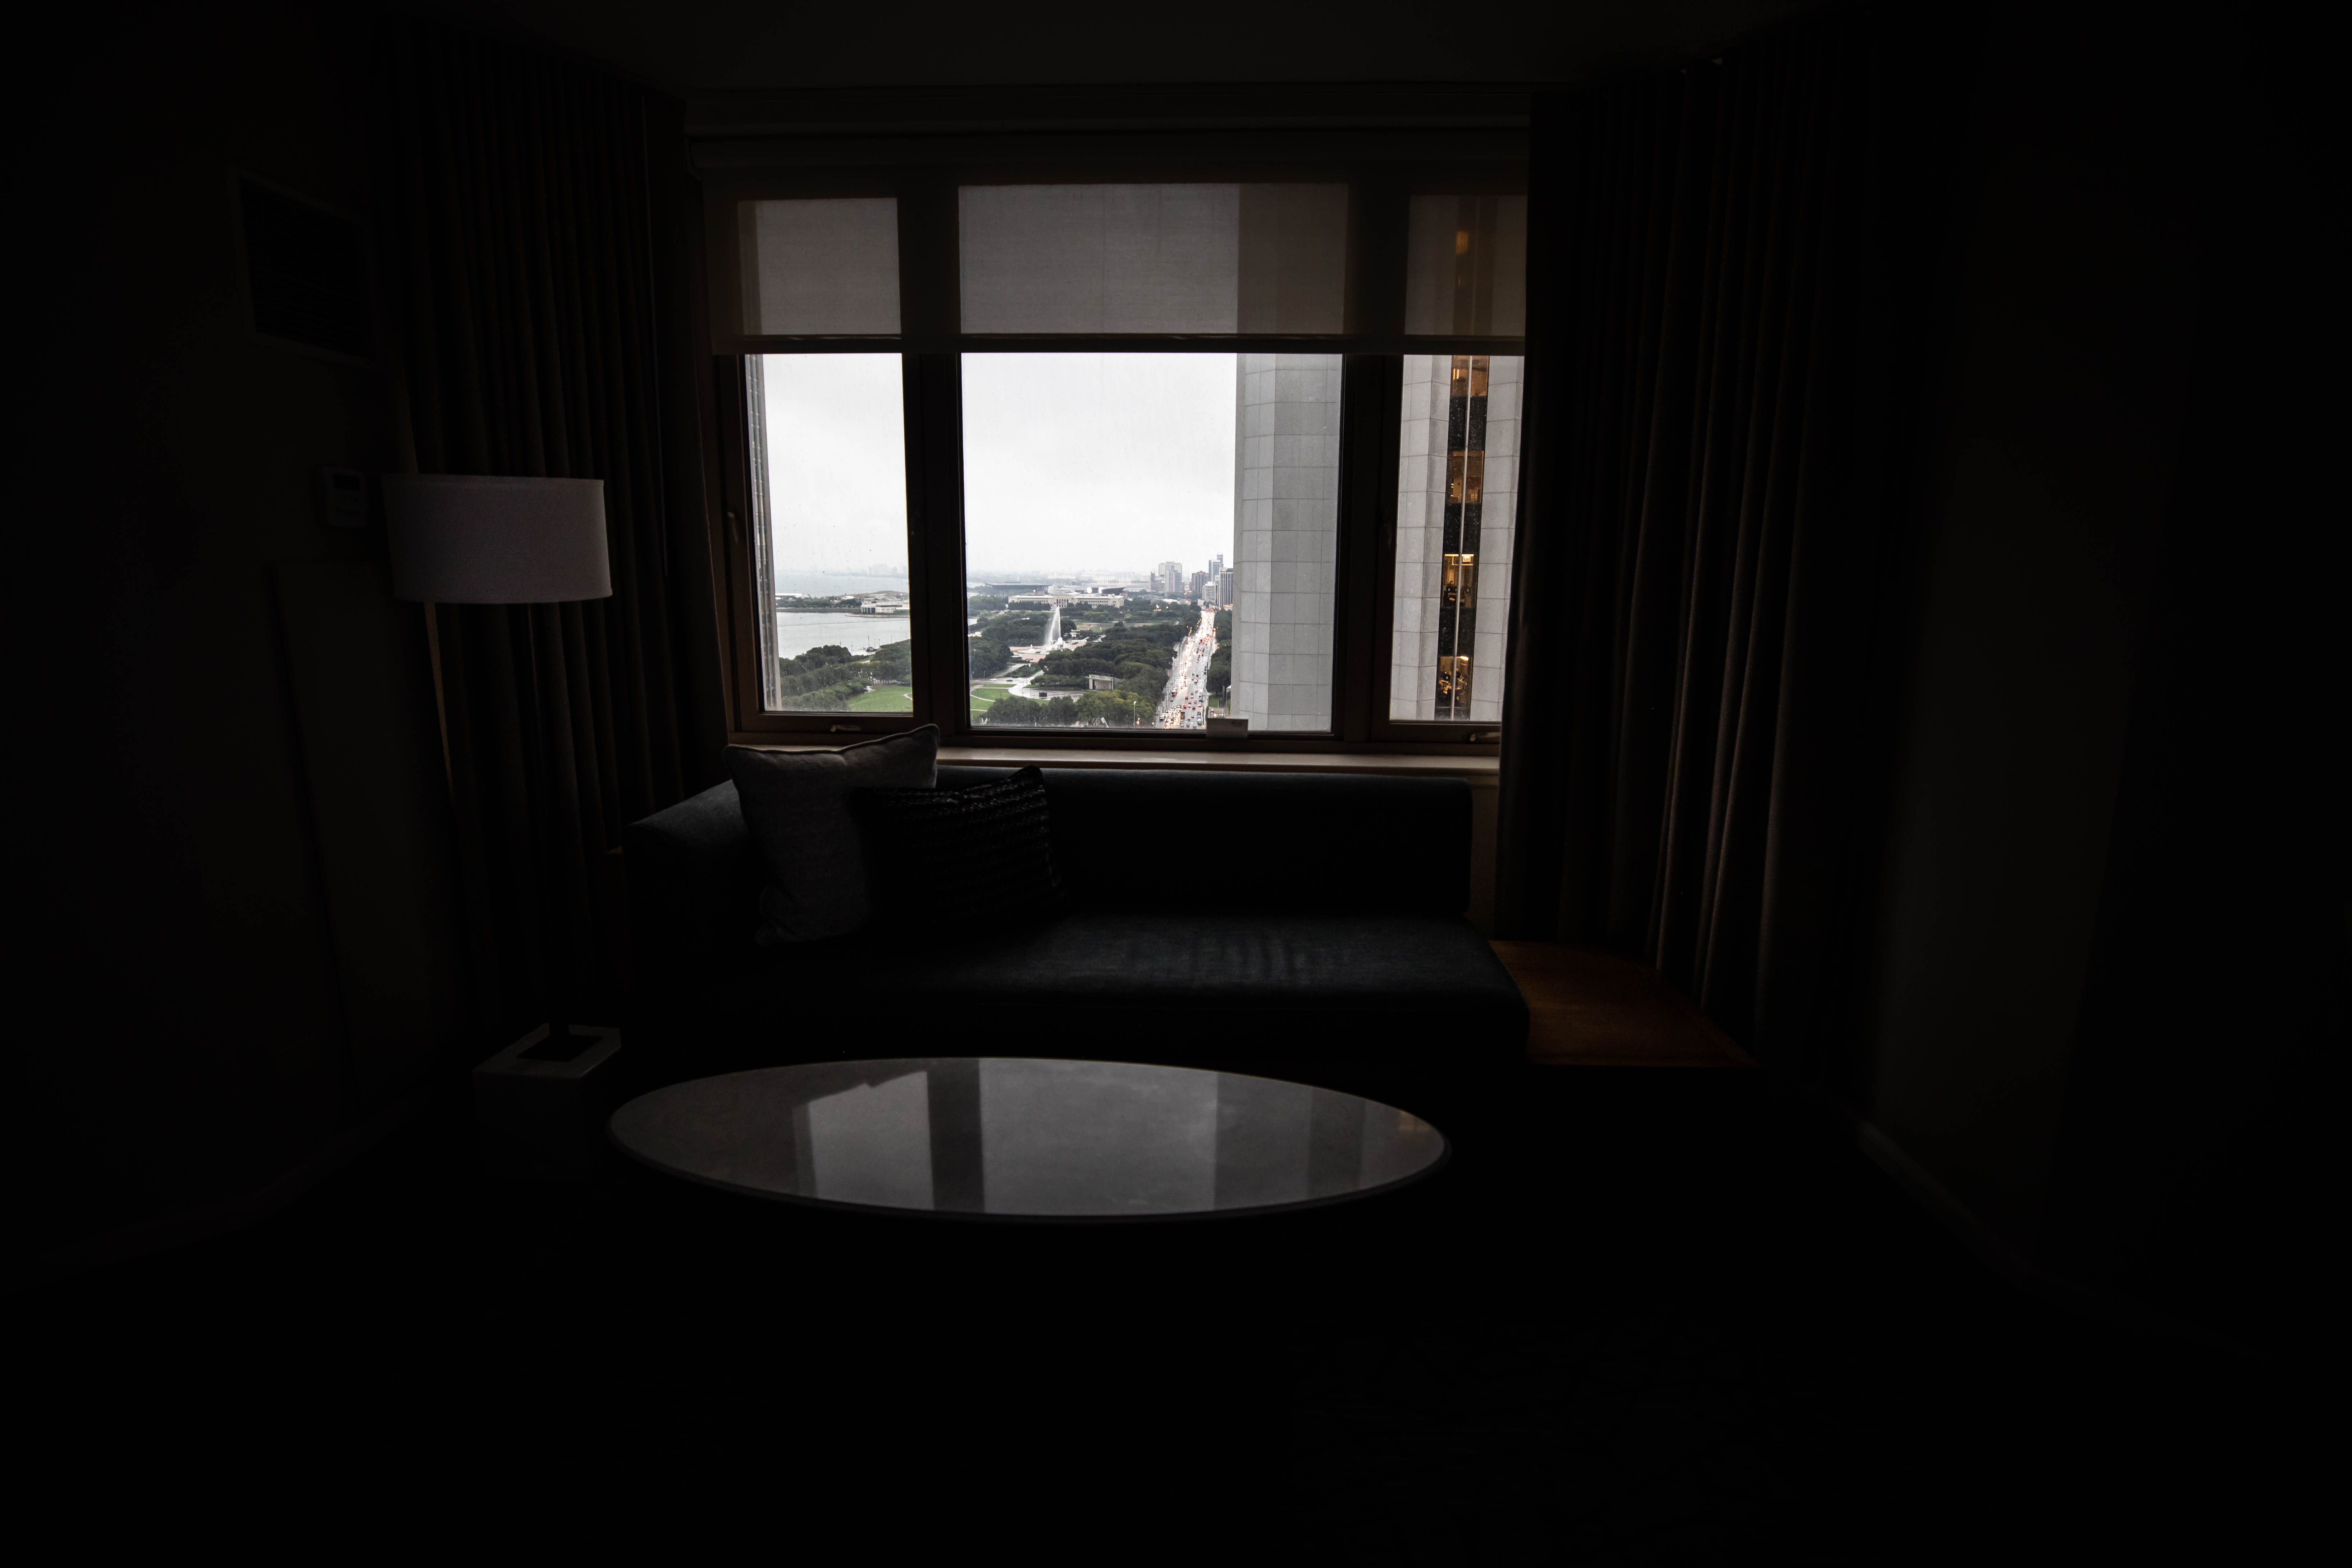 Fairmont Hotel Chicago Millennium Park Windy City Hotel Review by Annie Fairfax